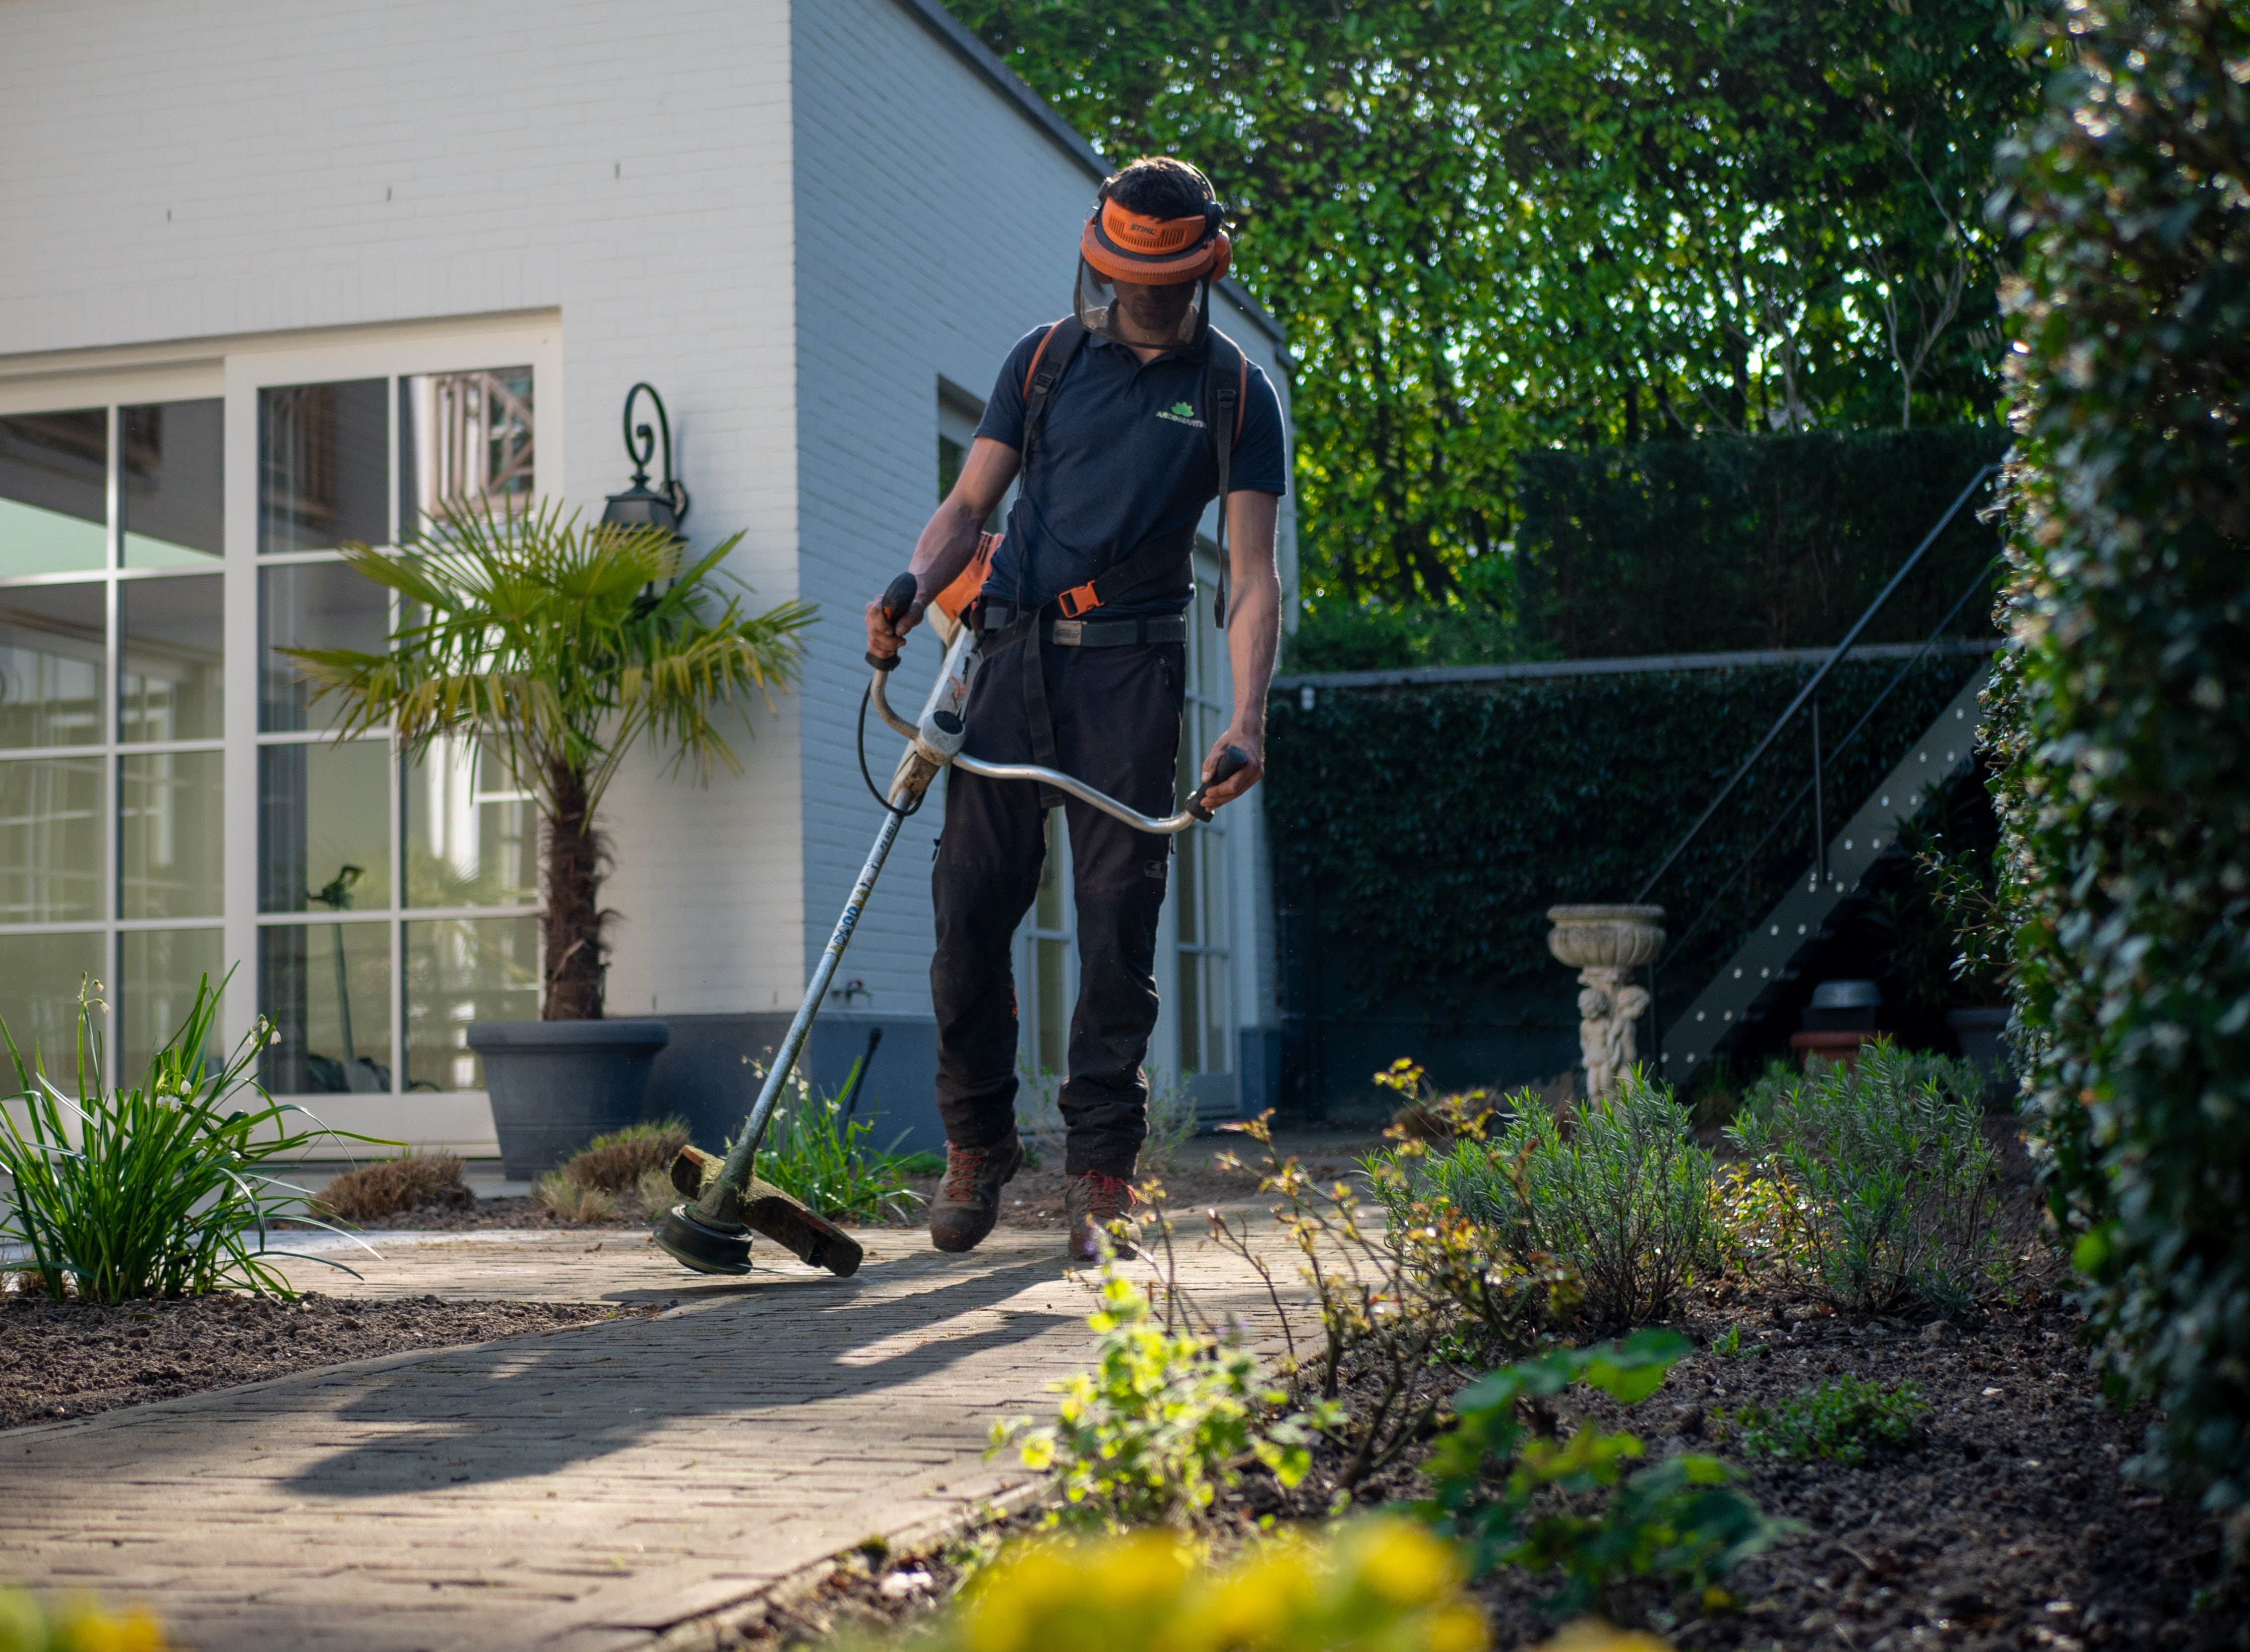 Hiring for Landscapers: 3 Easy Ways to Find Lawn Care Employees